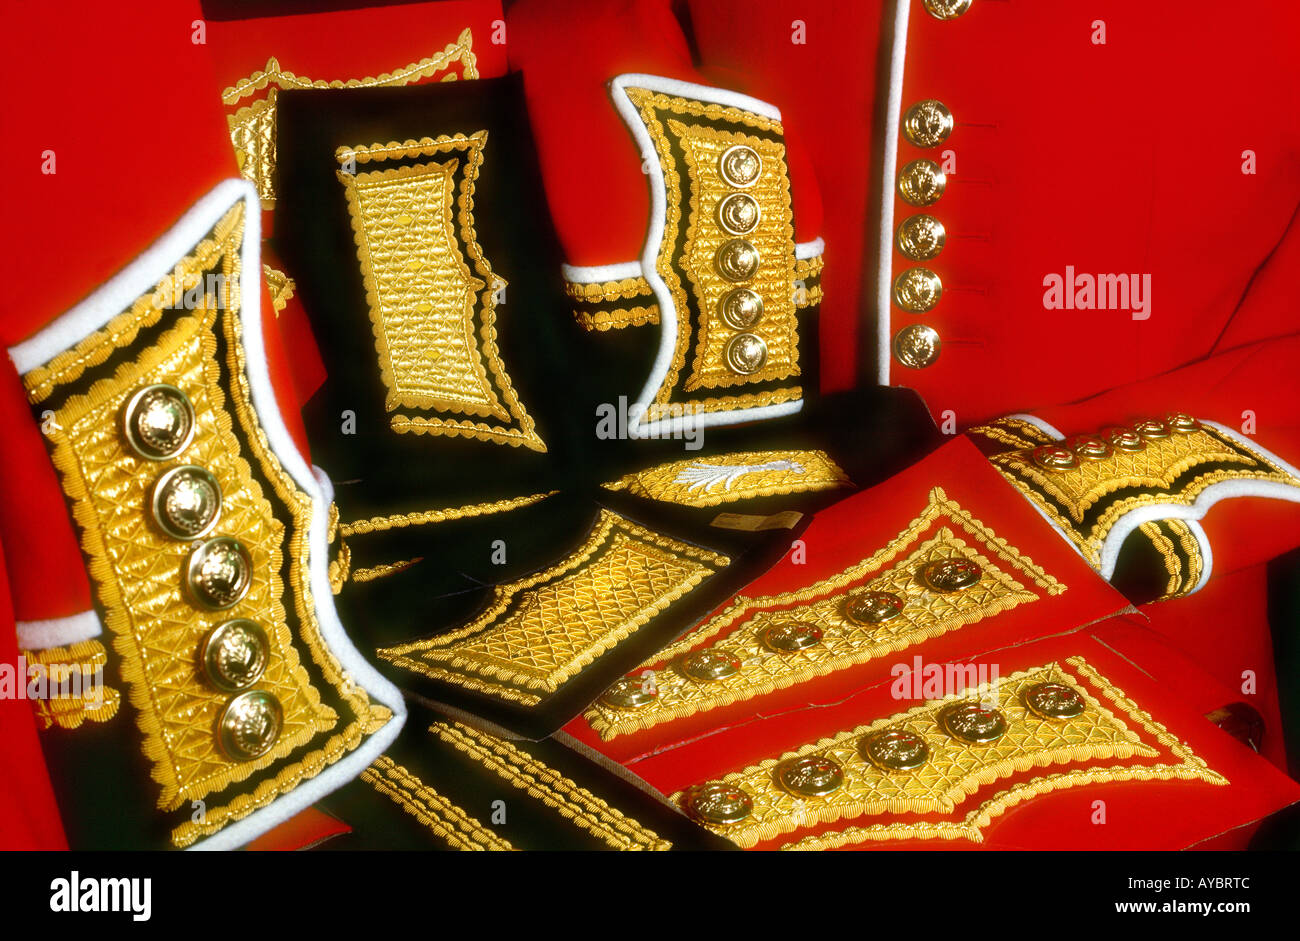 Still life, Swatches of red scarlet cloth with gold braid